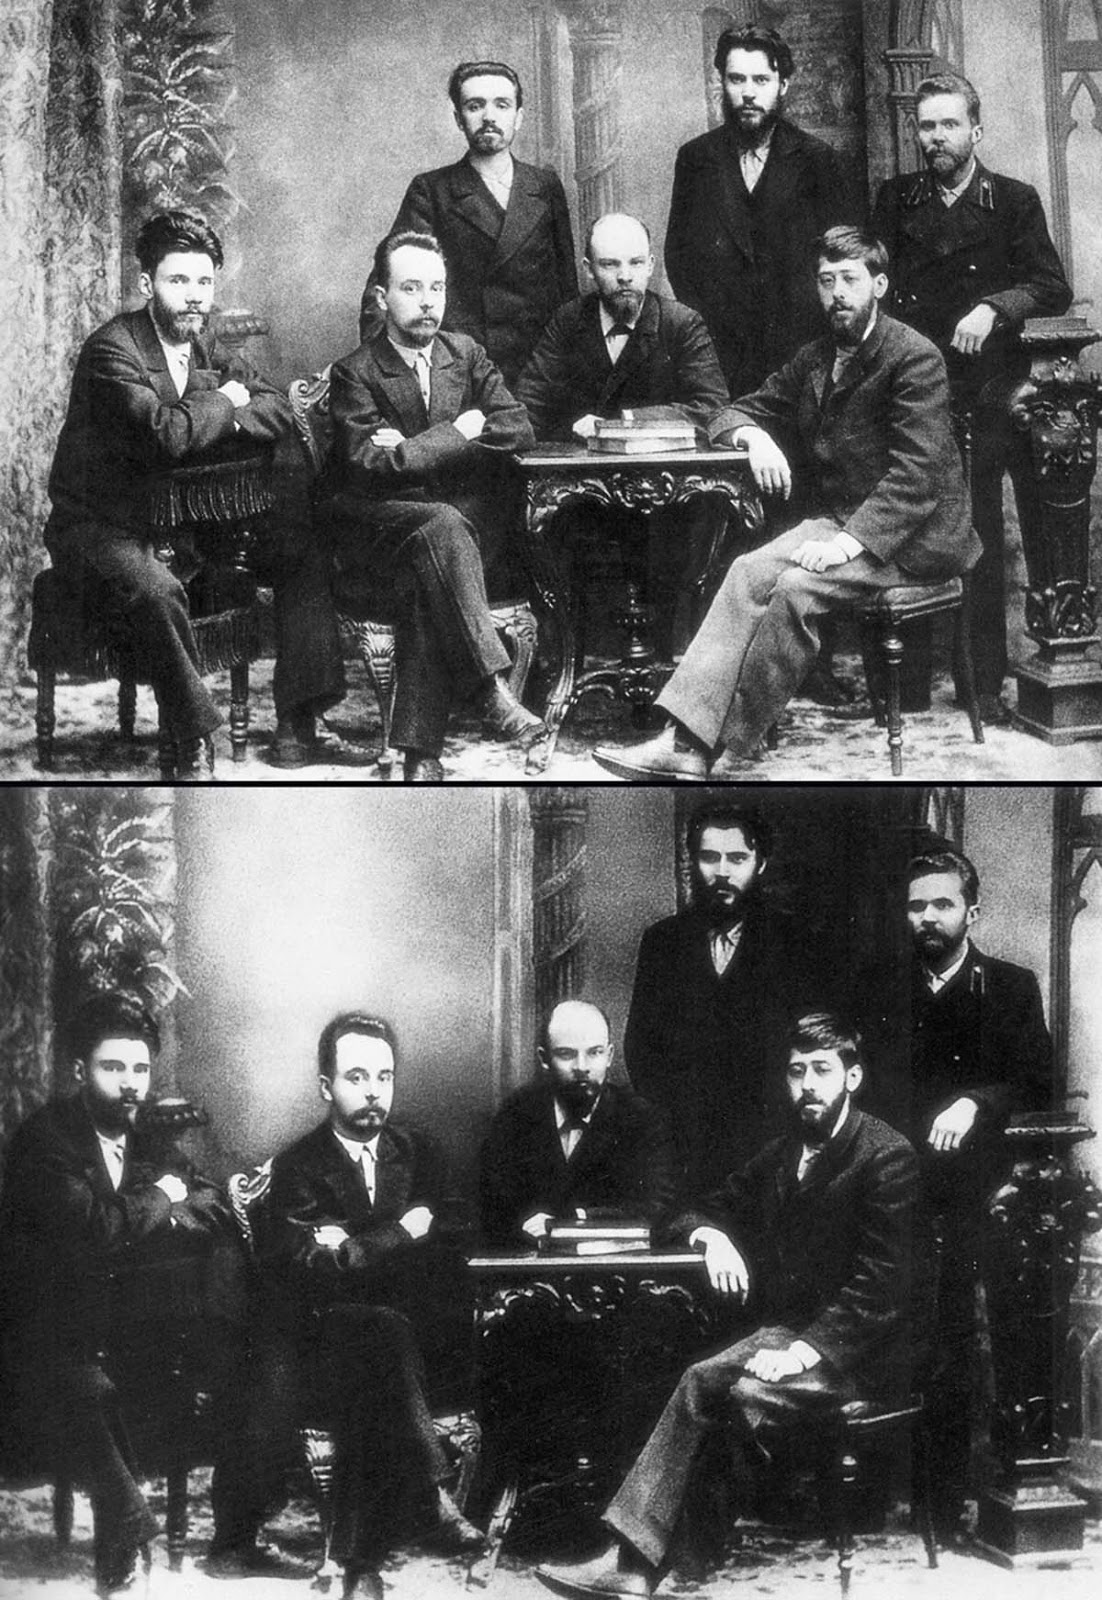 This historic picture showed young socialists in 1897 before some of them rose to power. You'll recognize a young Vladimir Lenin (in the middle) – of course, he kept his place. Alexander Malchenko (standing, on the left) was not so lucky: in 1930 he was accused of being a spy, executed, and replaced with a white spot.